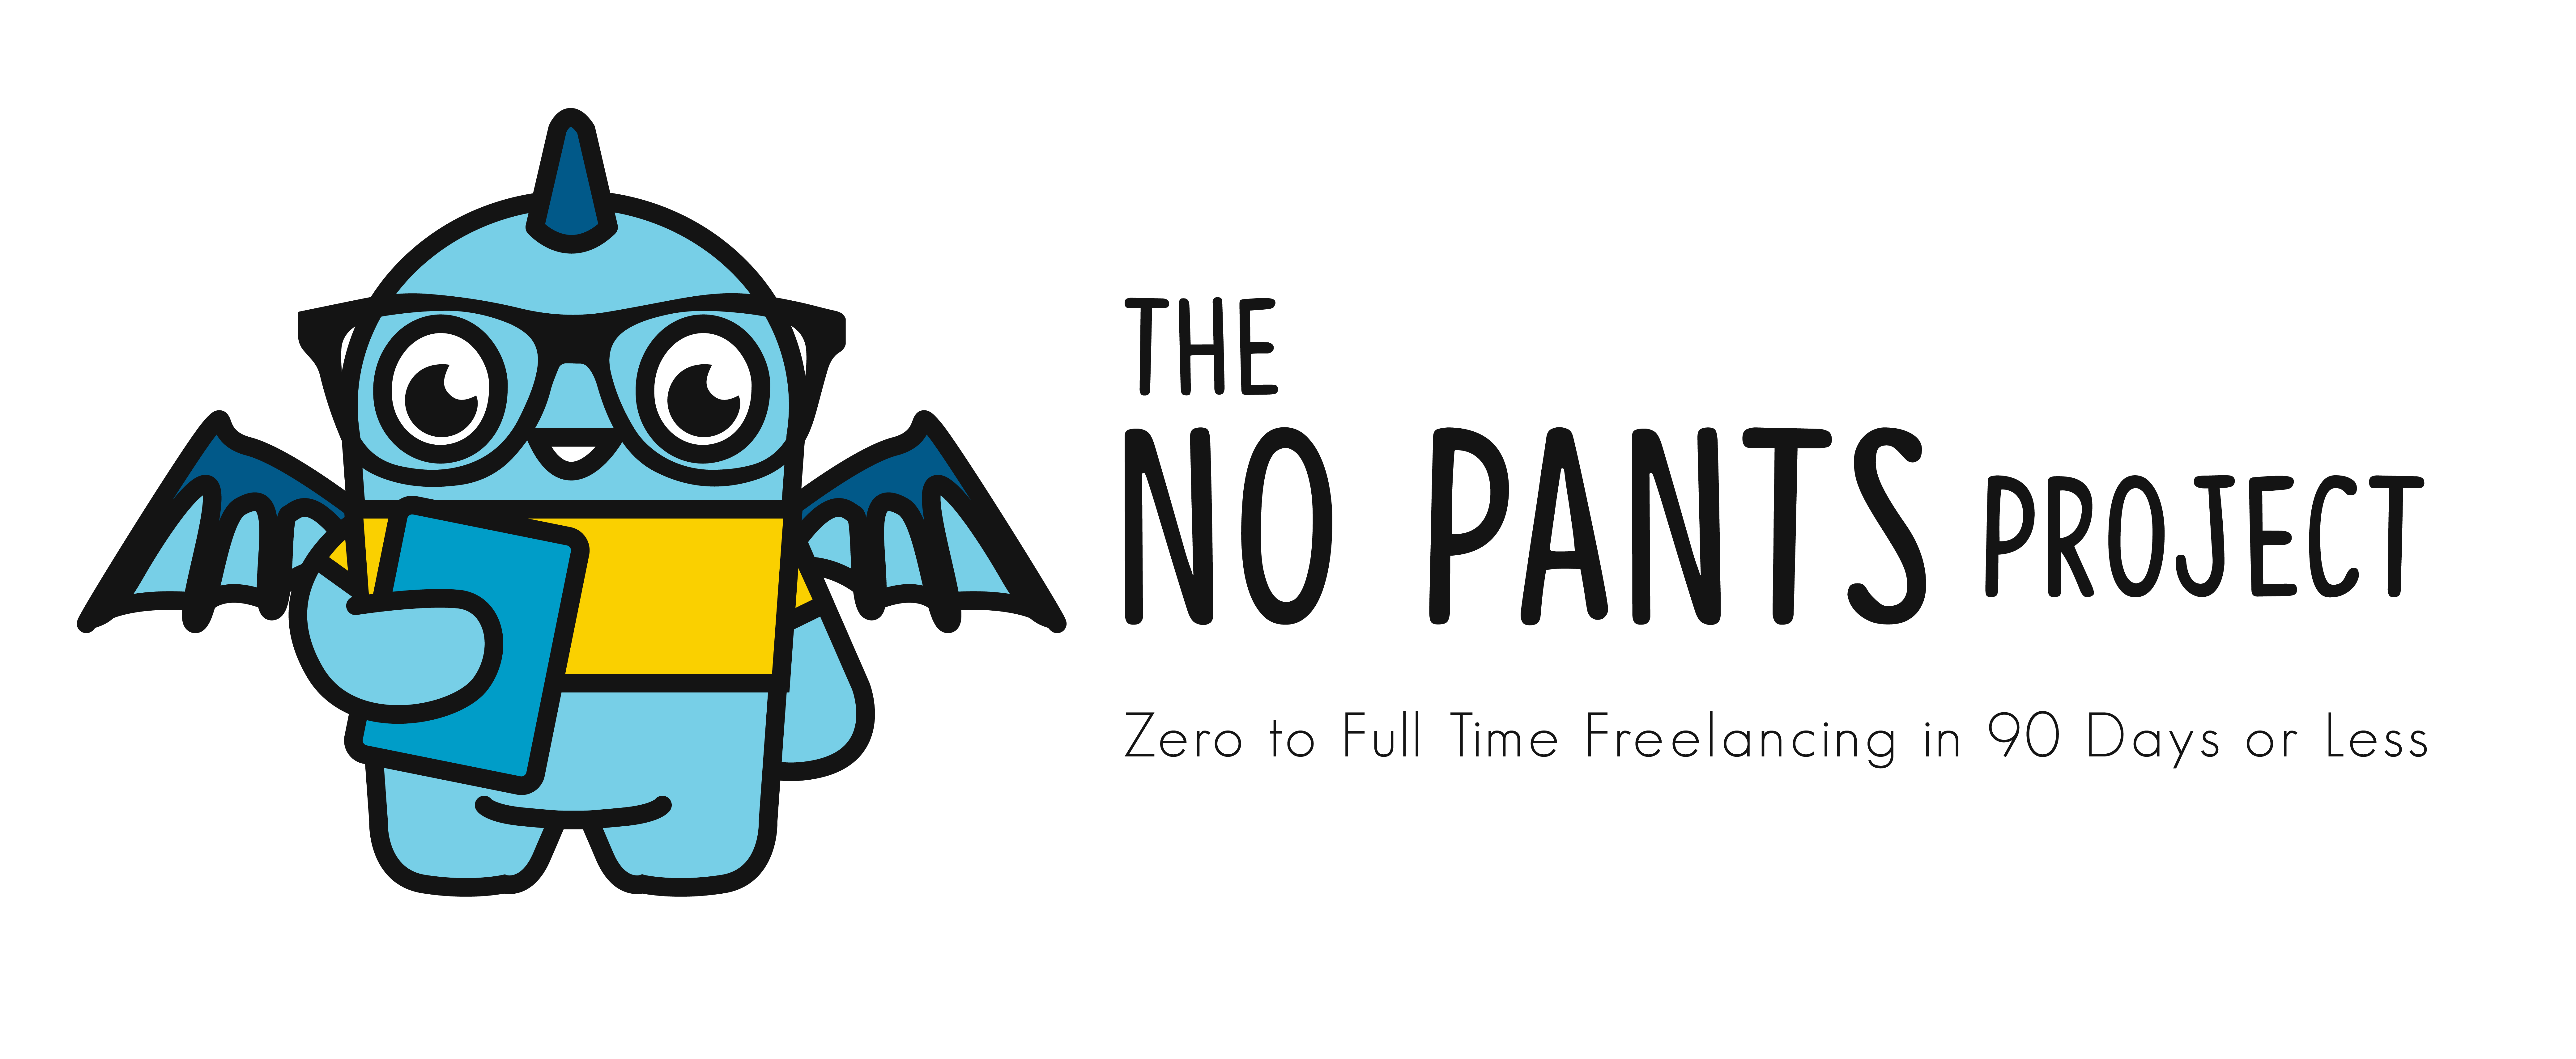 The No Pants Project | Zero to Full Time Freelancing in 90 Days or Less